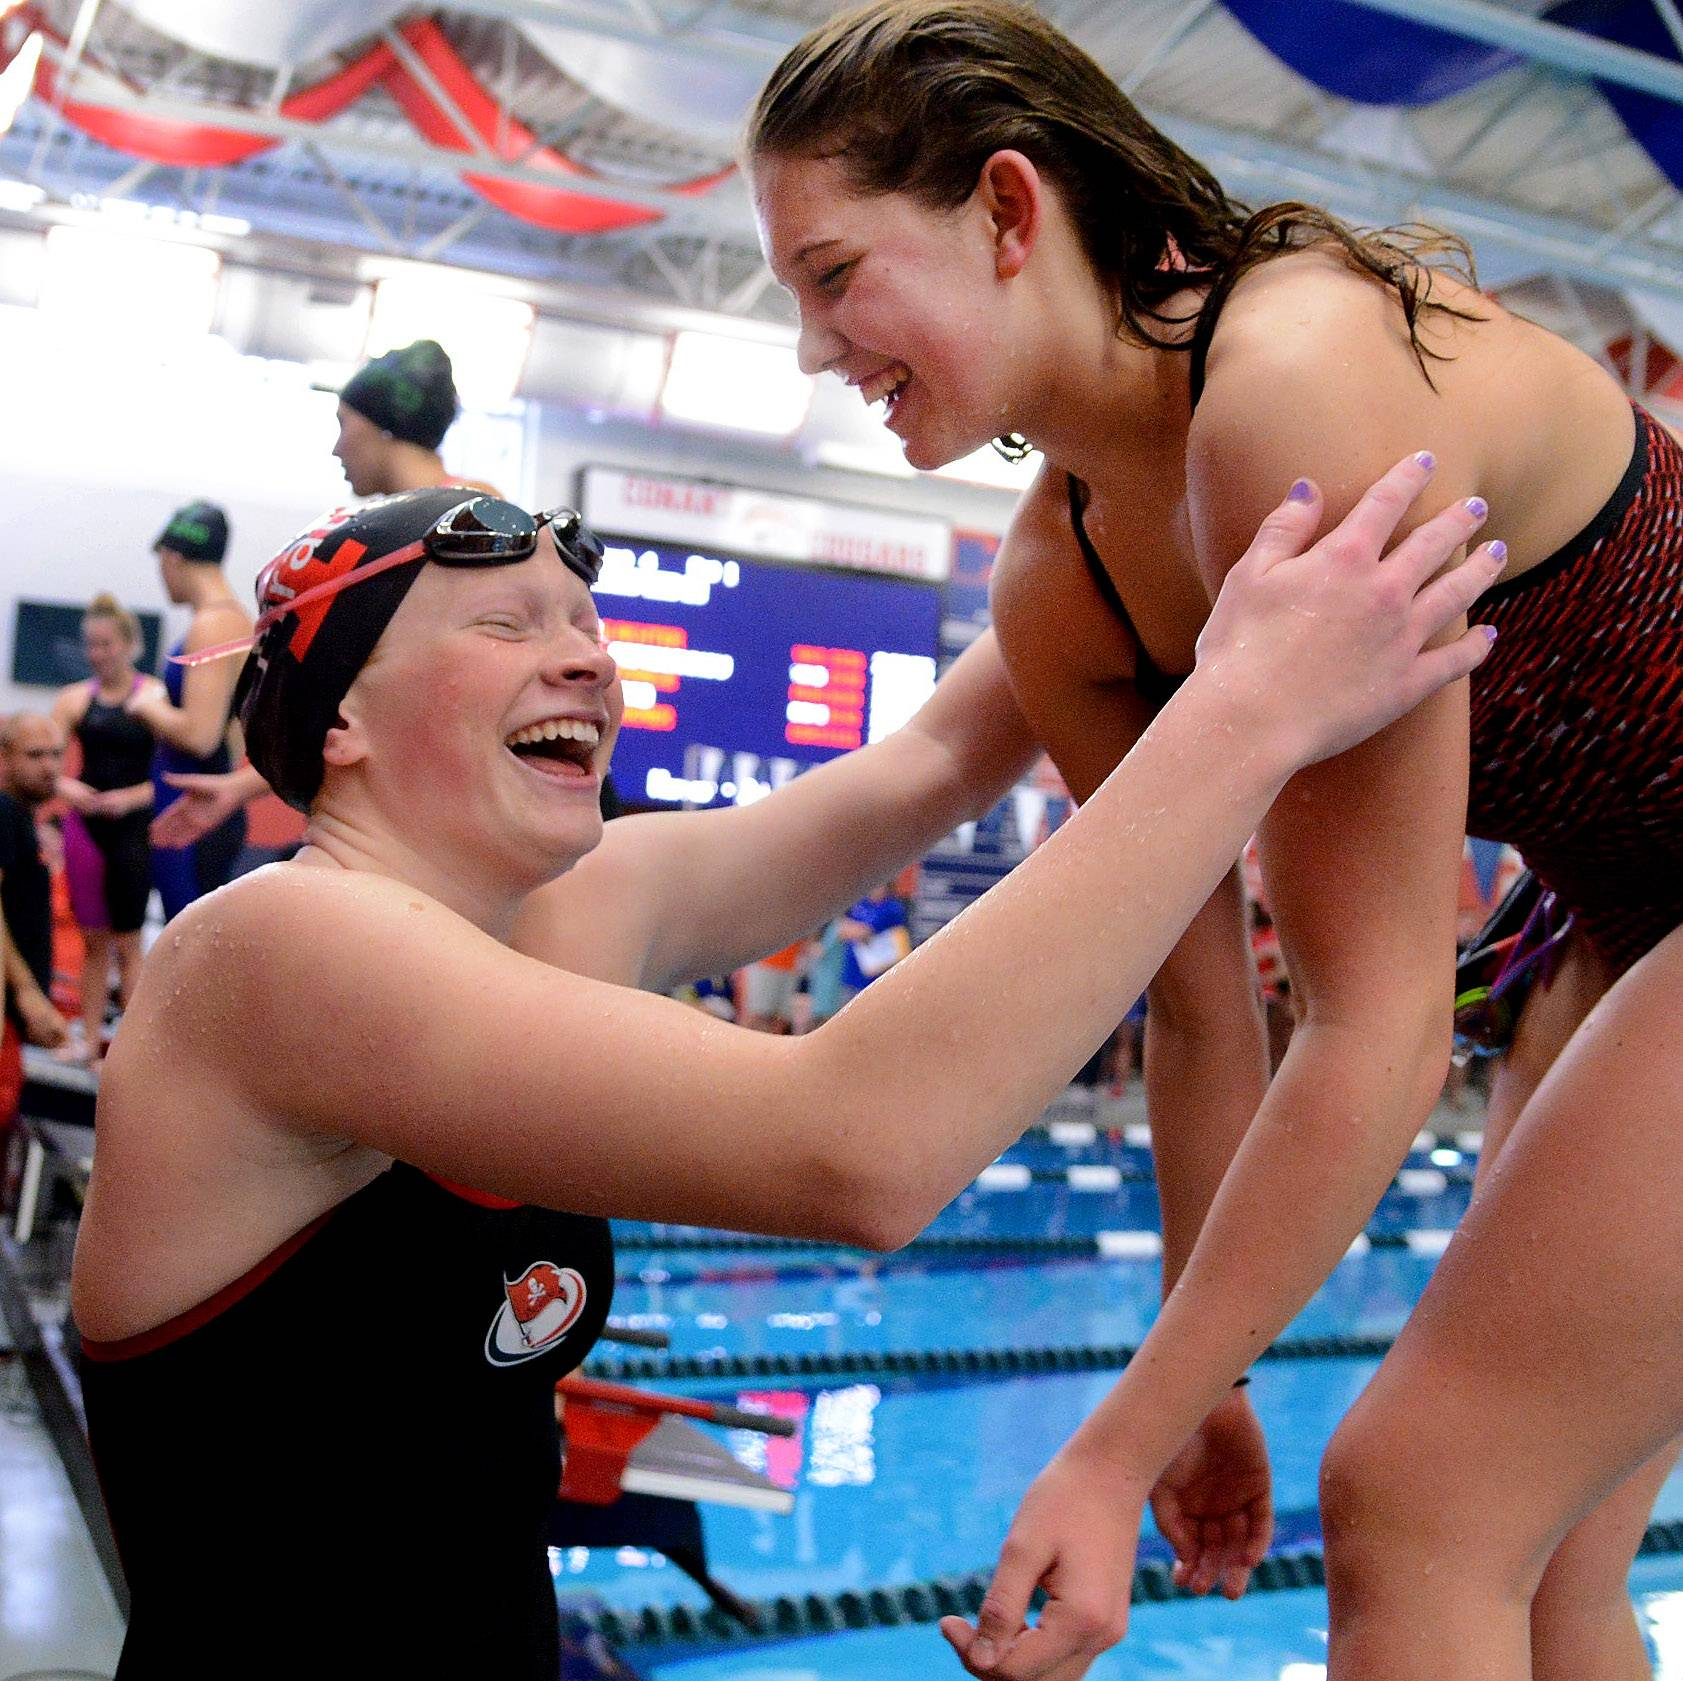 Jane Smith of Palatine, left, celebrates with Becca Galovich of Barrington after the 200-yard freestyle in the Mid-Suburban League meet. Both will be trying to earn their second straight state meet appearances with qualifying performances in Saturday's sectional meet at Barrington.